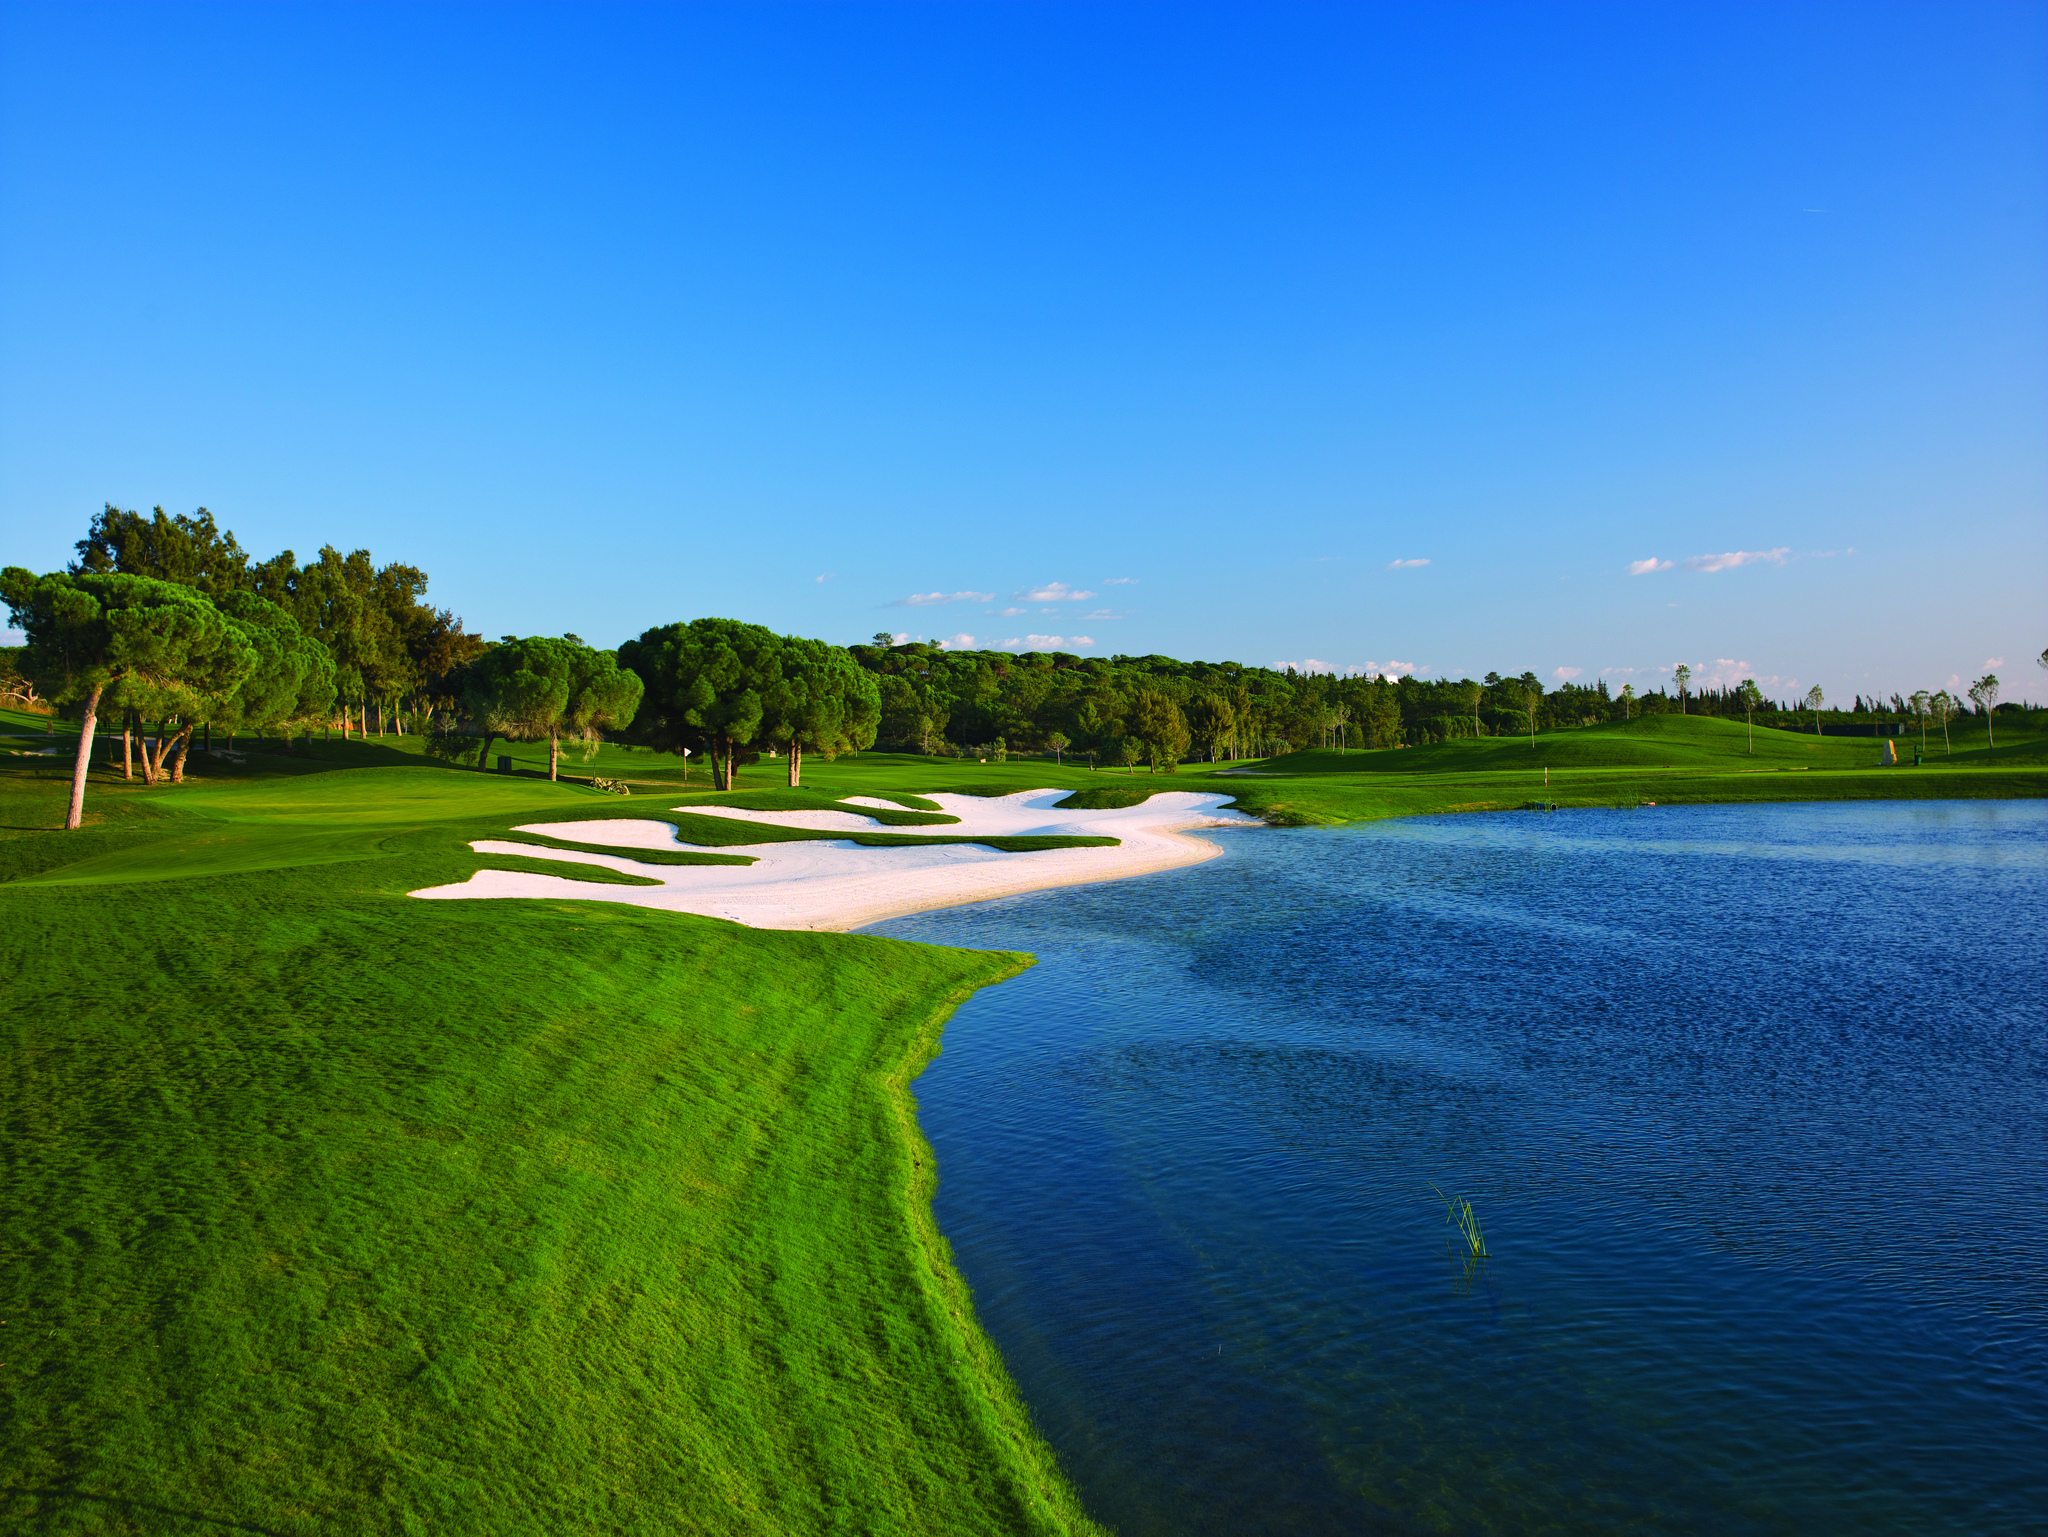 Err off the tee, and you could be visiting one of the numerous water hazards